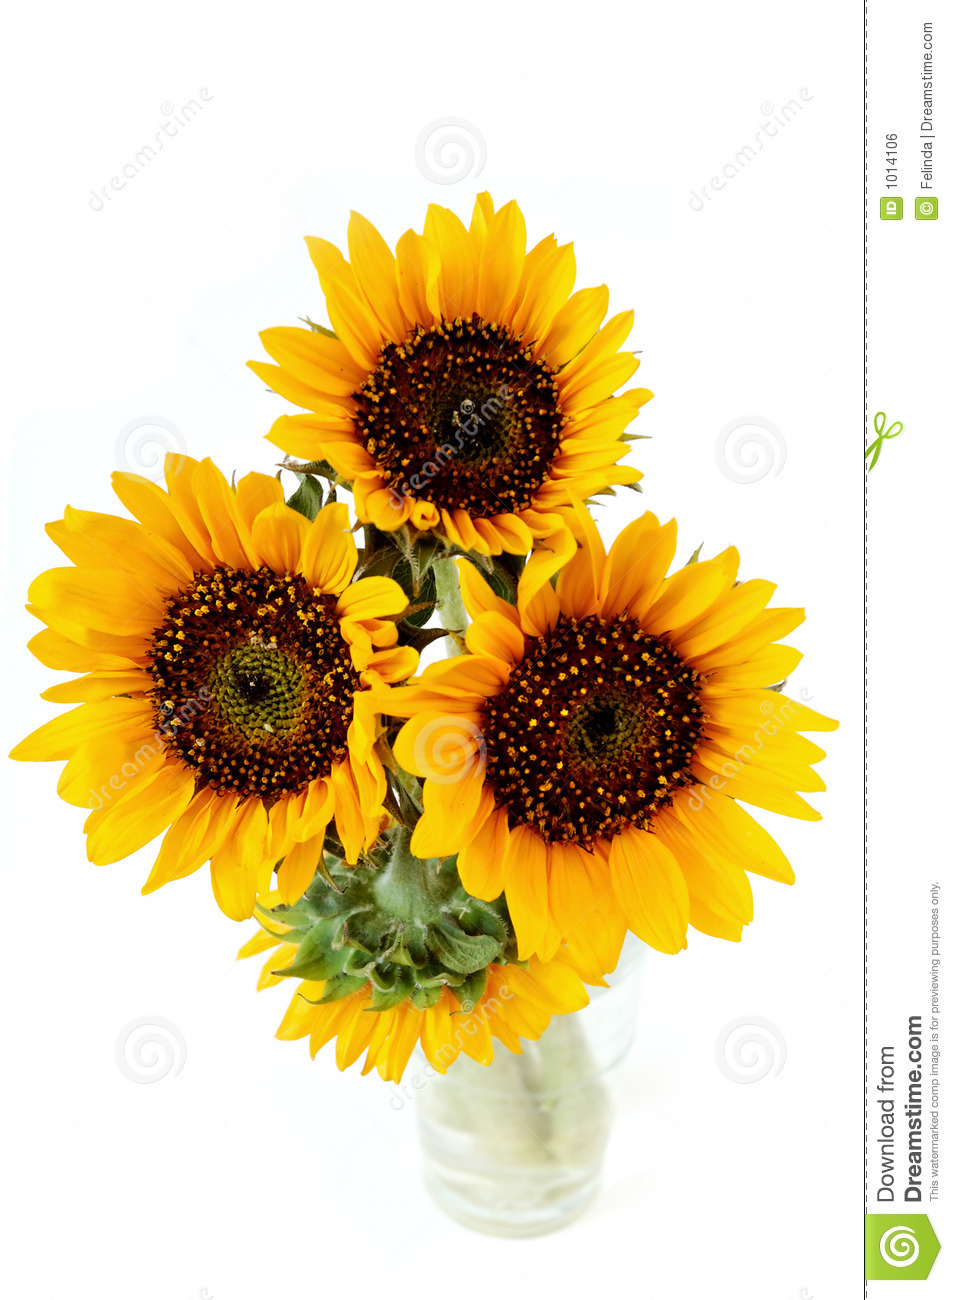 Sunflowers In The Vase Royalty Free Stock Image Image